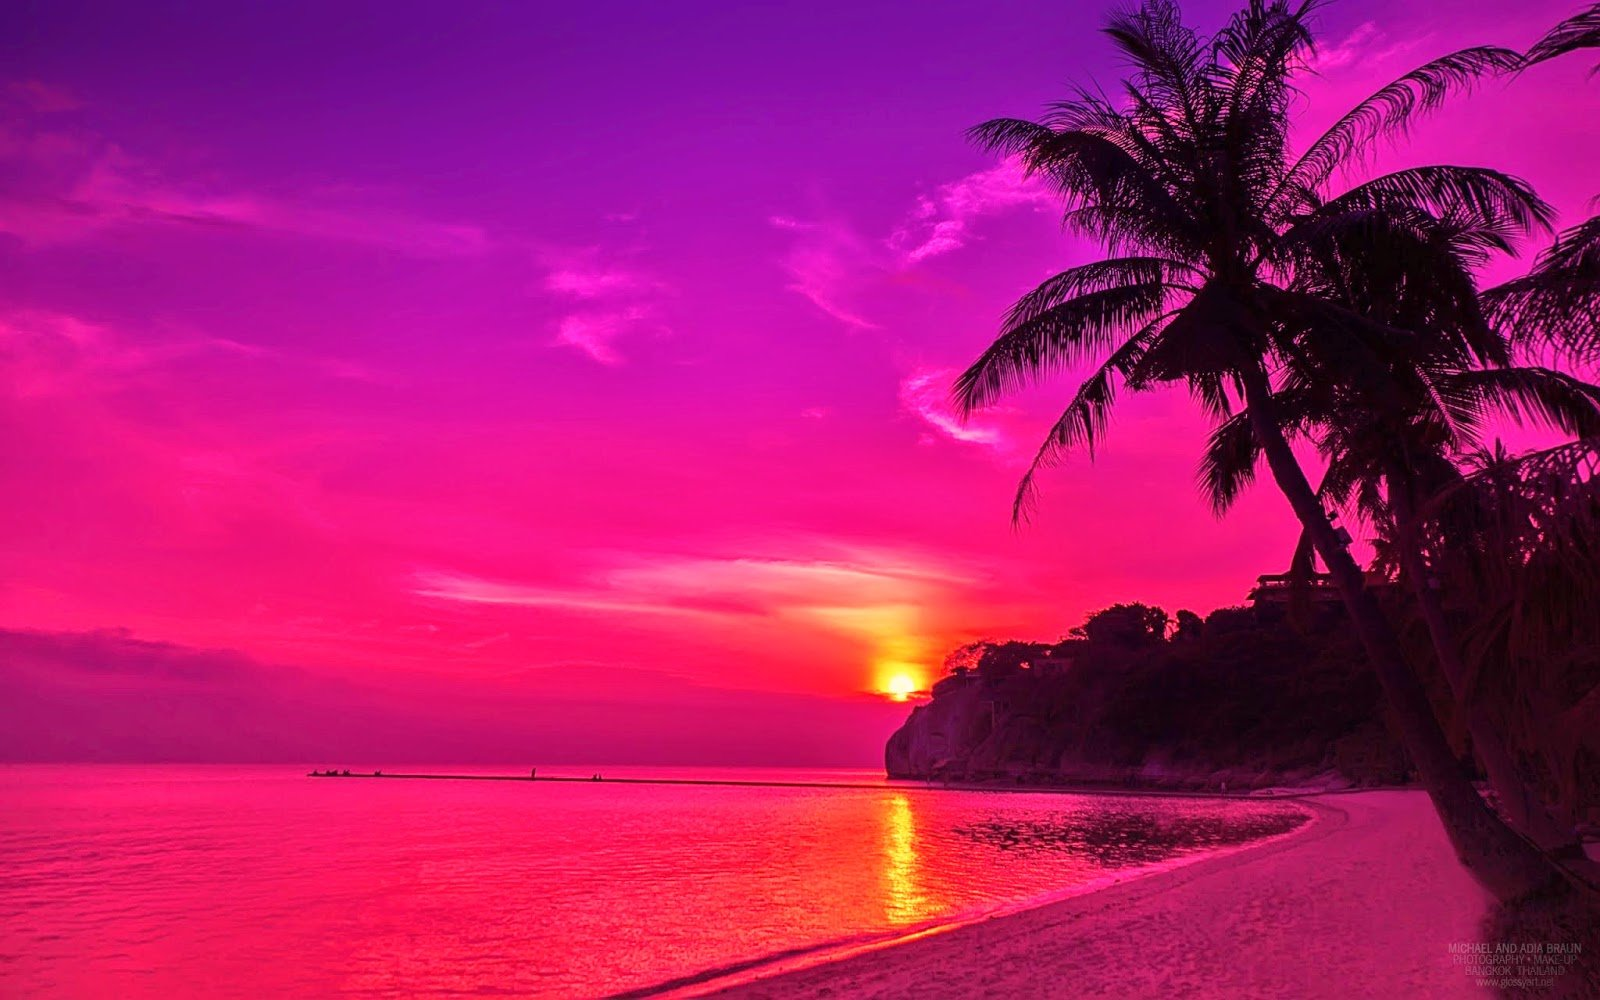 Beach Sunset Backgrounds Tumblr: Purple And Pink Sunset Wallpaper